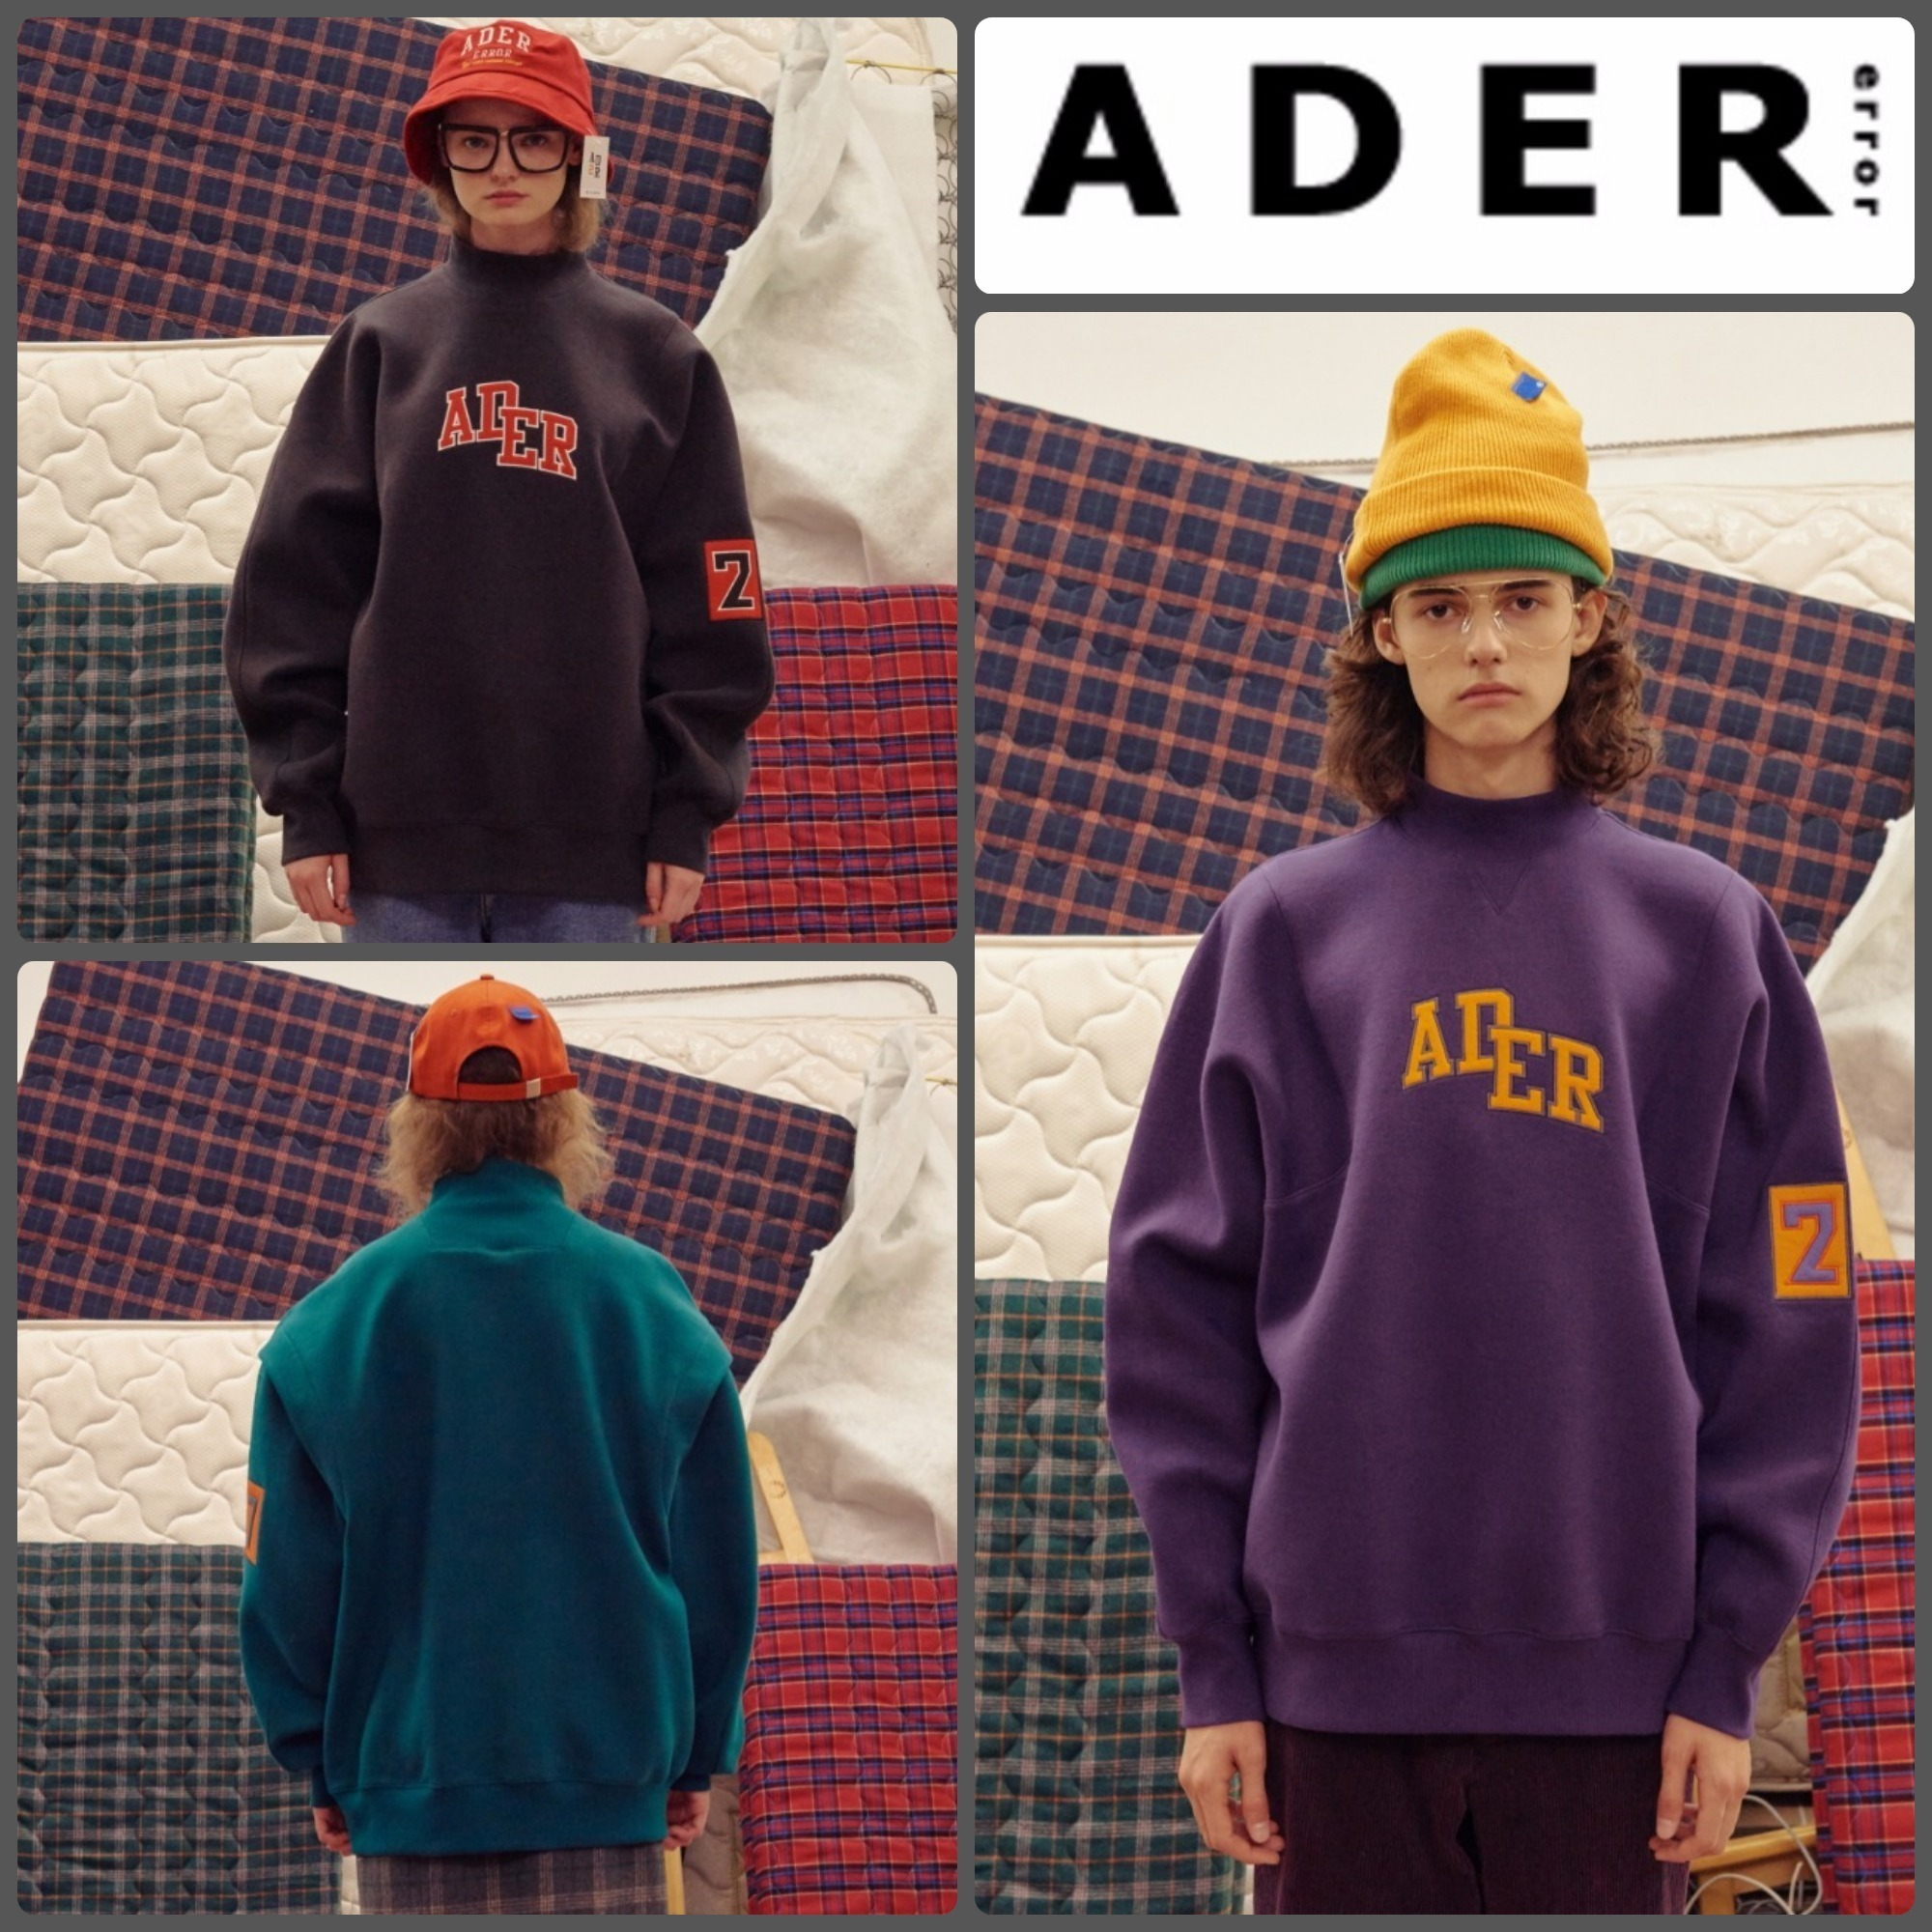 【ADERERROR】正規品★UNISEX BILLY S スウェット 3色/追跡付